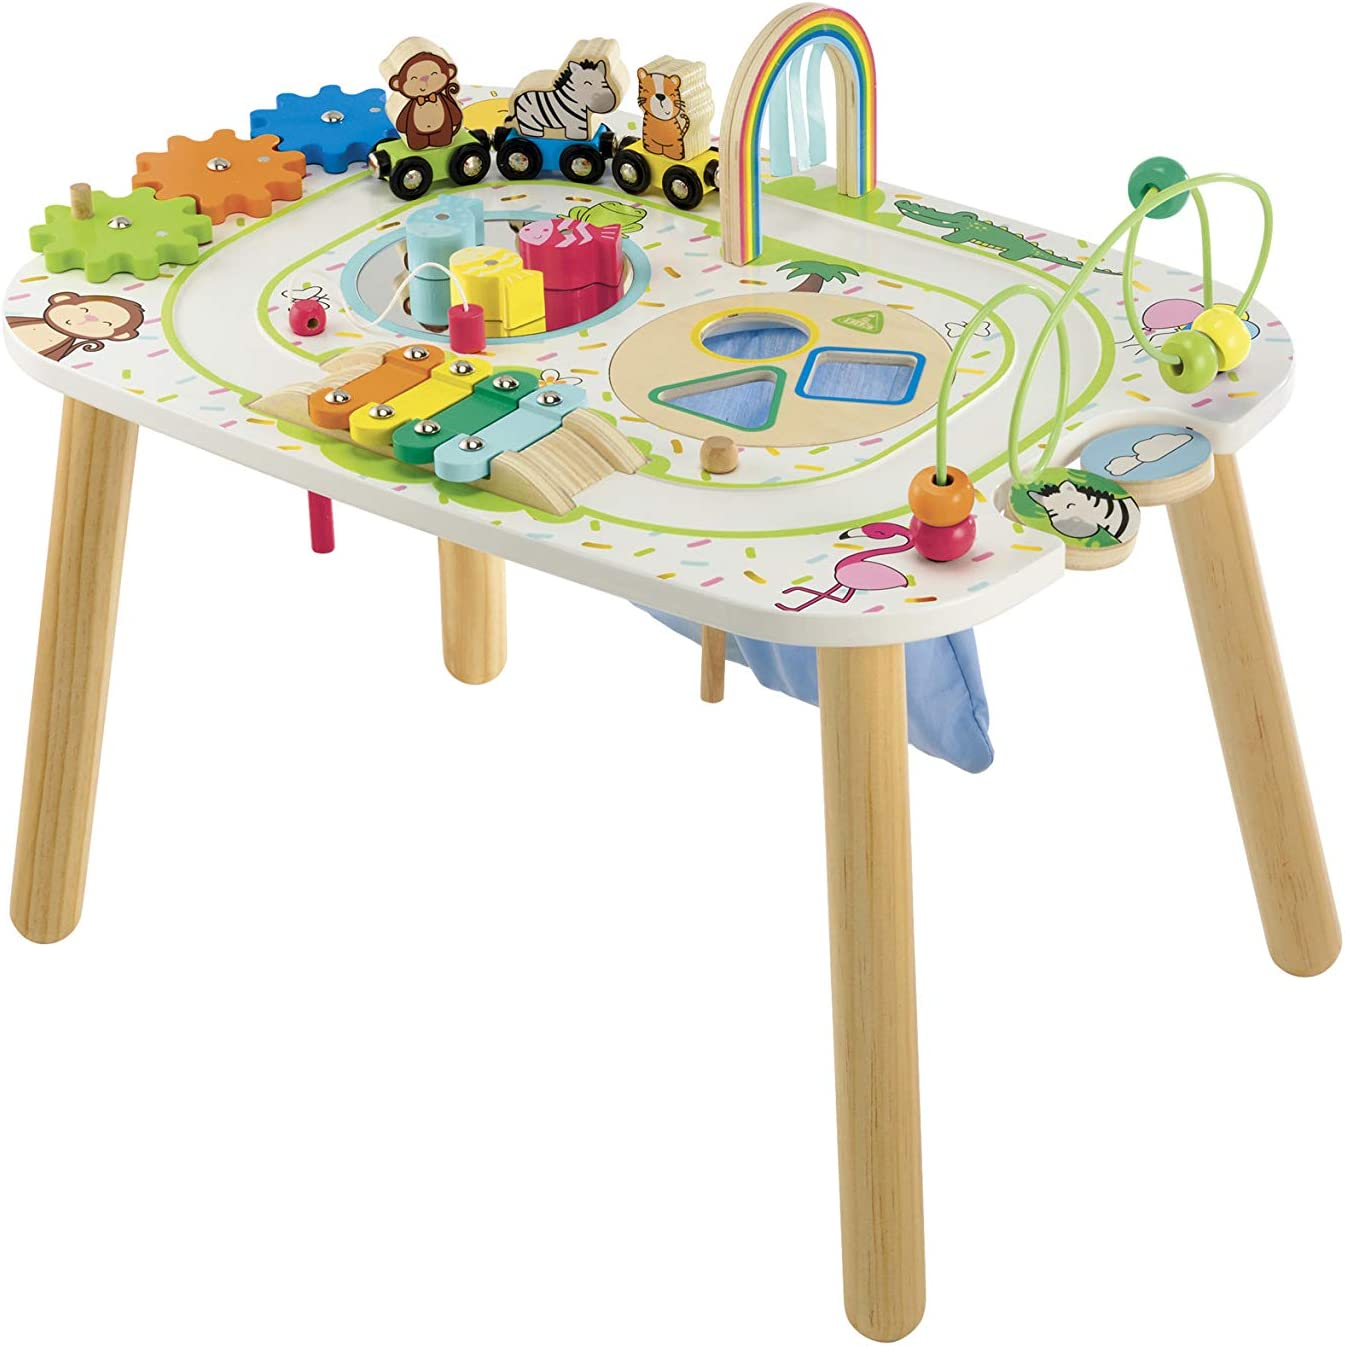 Early Learning Centre Wooden Activity Train Table, Amazon Exclusive